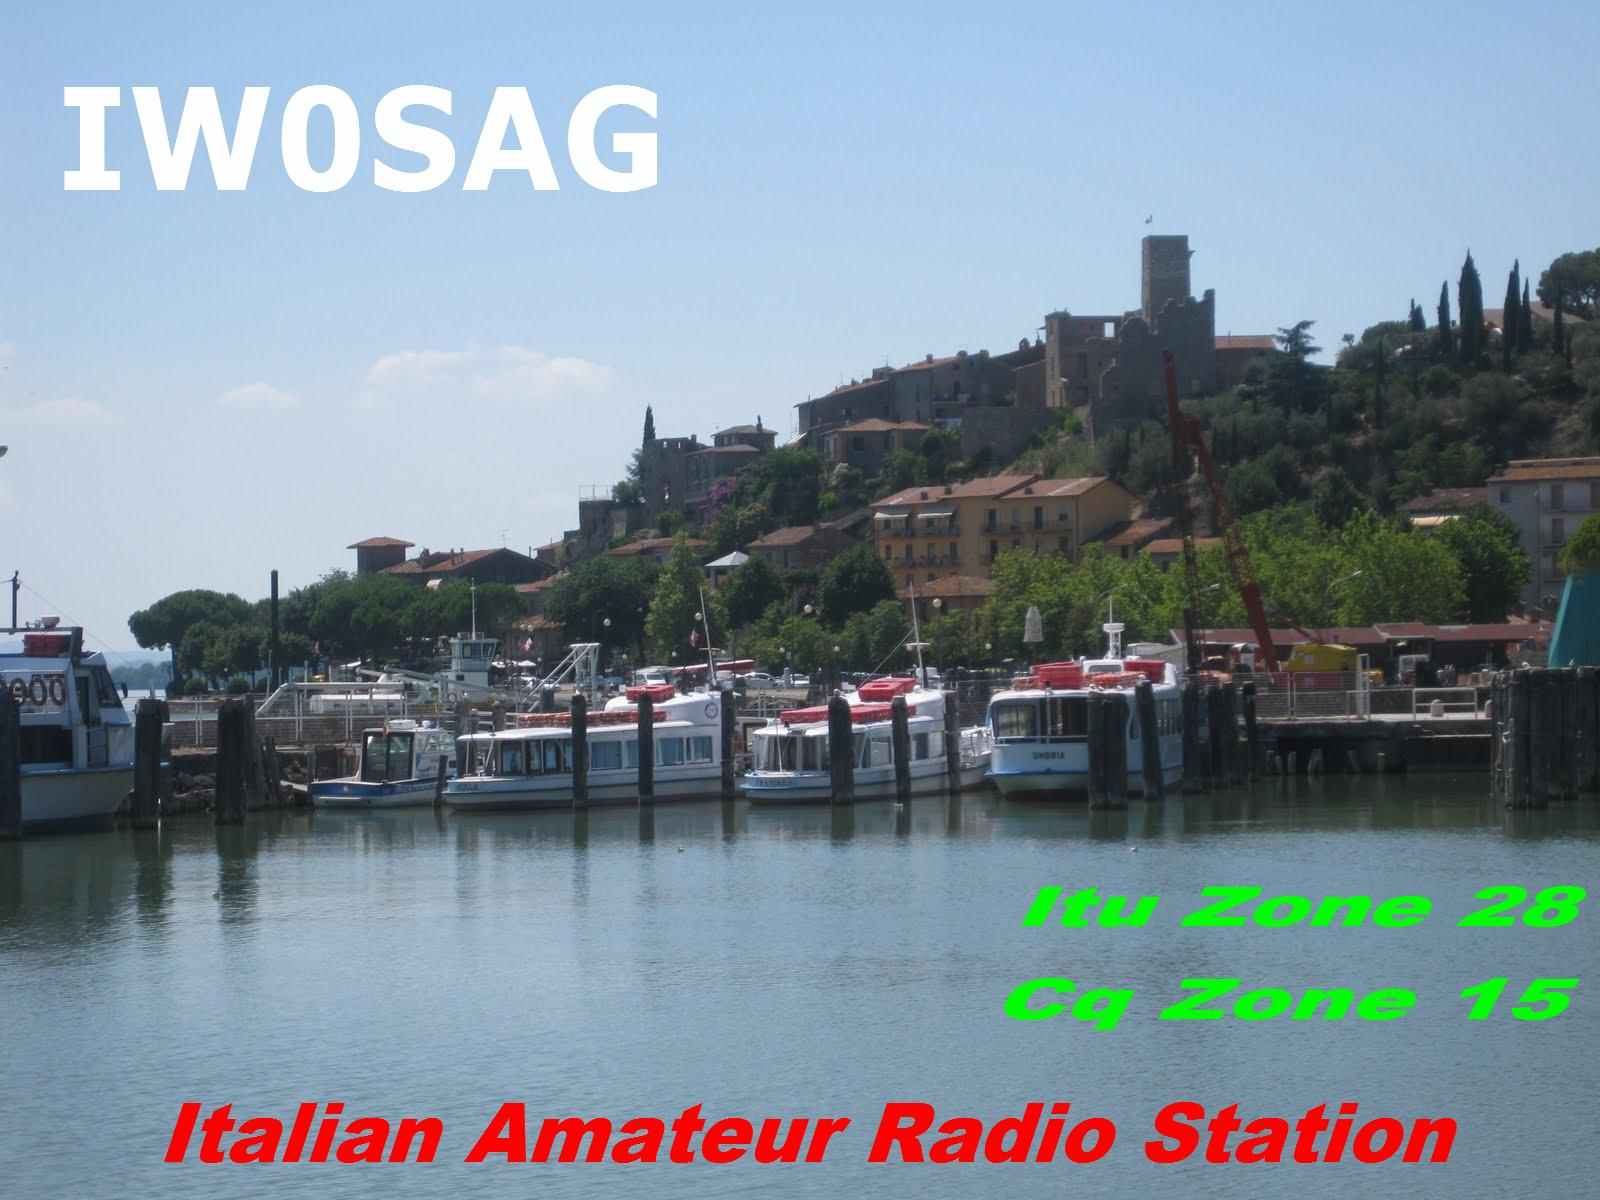 QSL image for IW0SAG